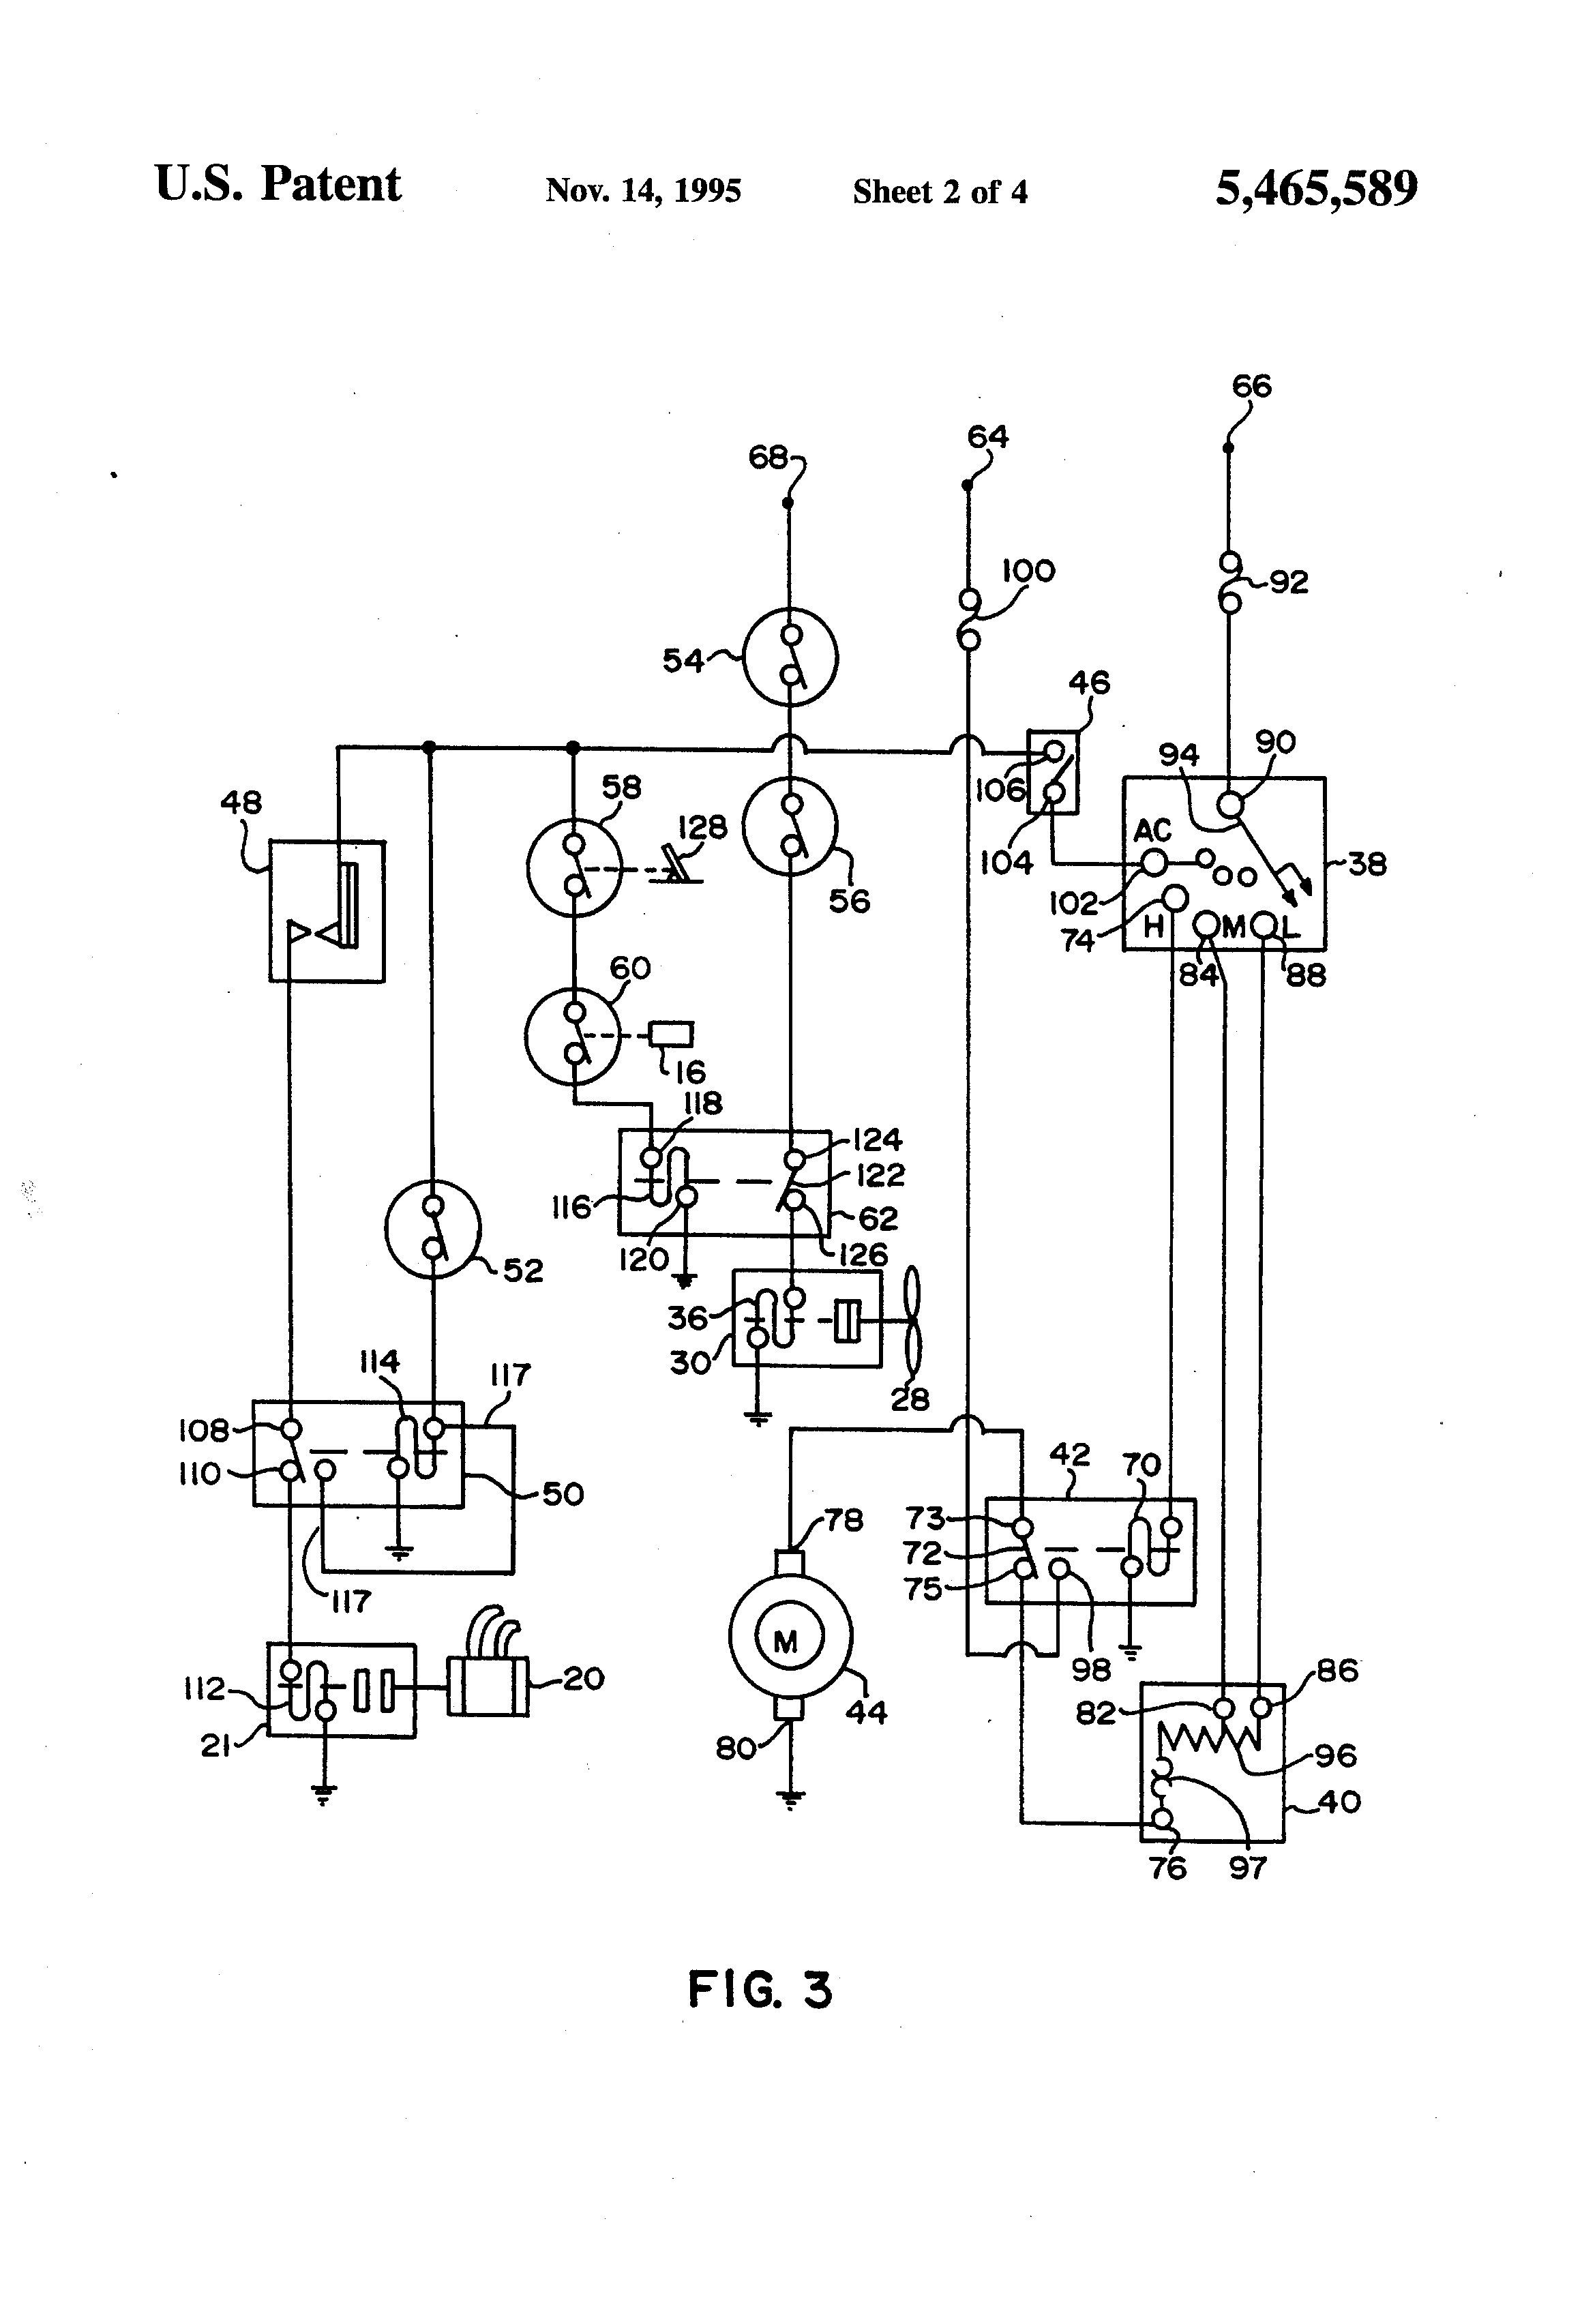 Ih Truck Wiring Diagram Wiring Diagram For 2004 Polaris 700 Sportsman Key Switch Dvi D Tehsusu Decorresine It